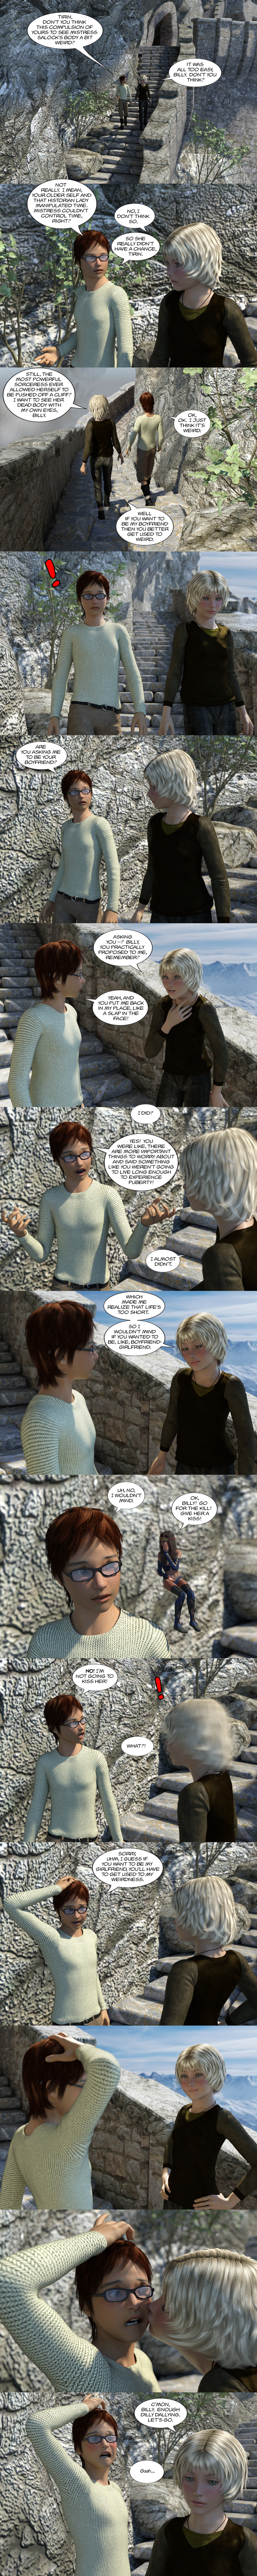 Chapter 17, page 15 – Billy and Tirin interlude